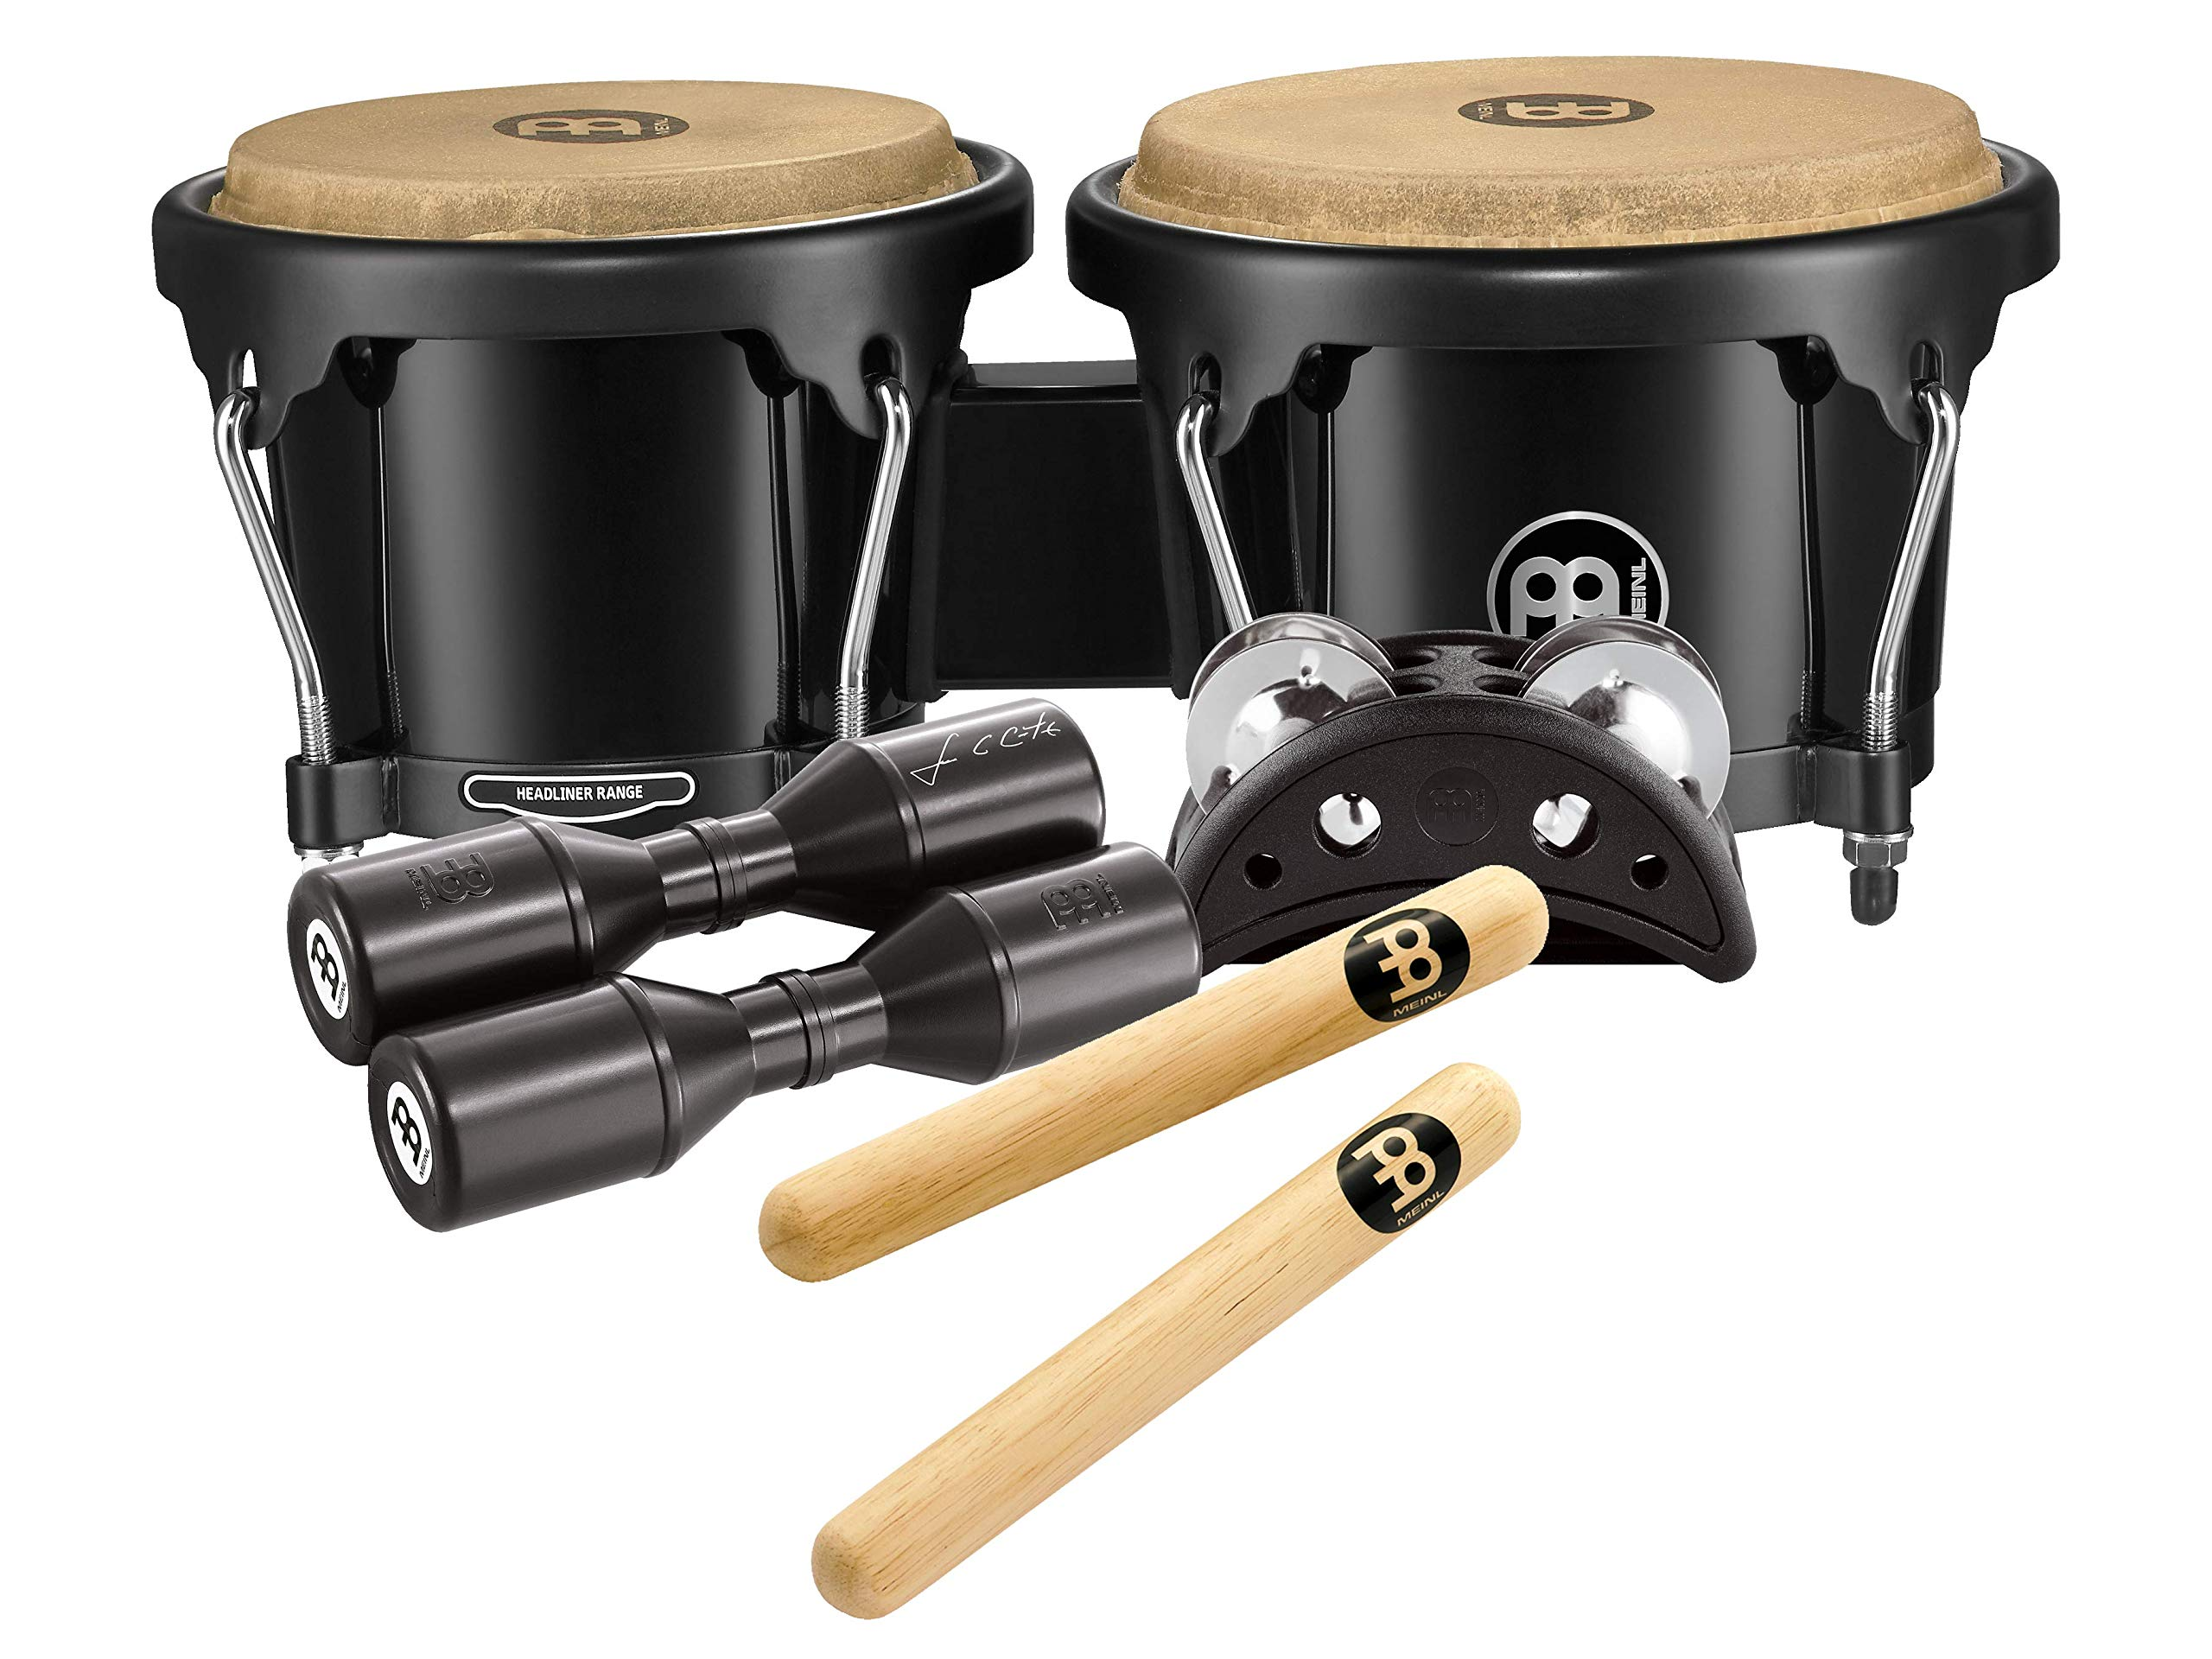 Meinl Percussion BPP-1 Bongo and Percussion Pack for Jam Sessions or Acoustic Sets by Meinl Percussion